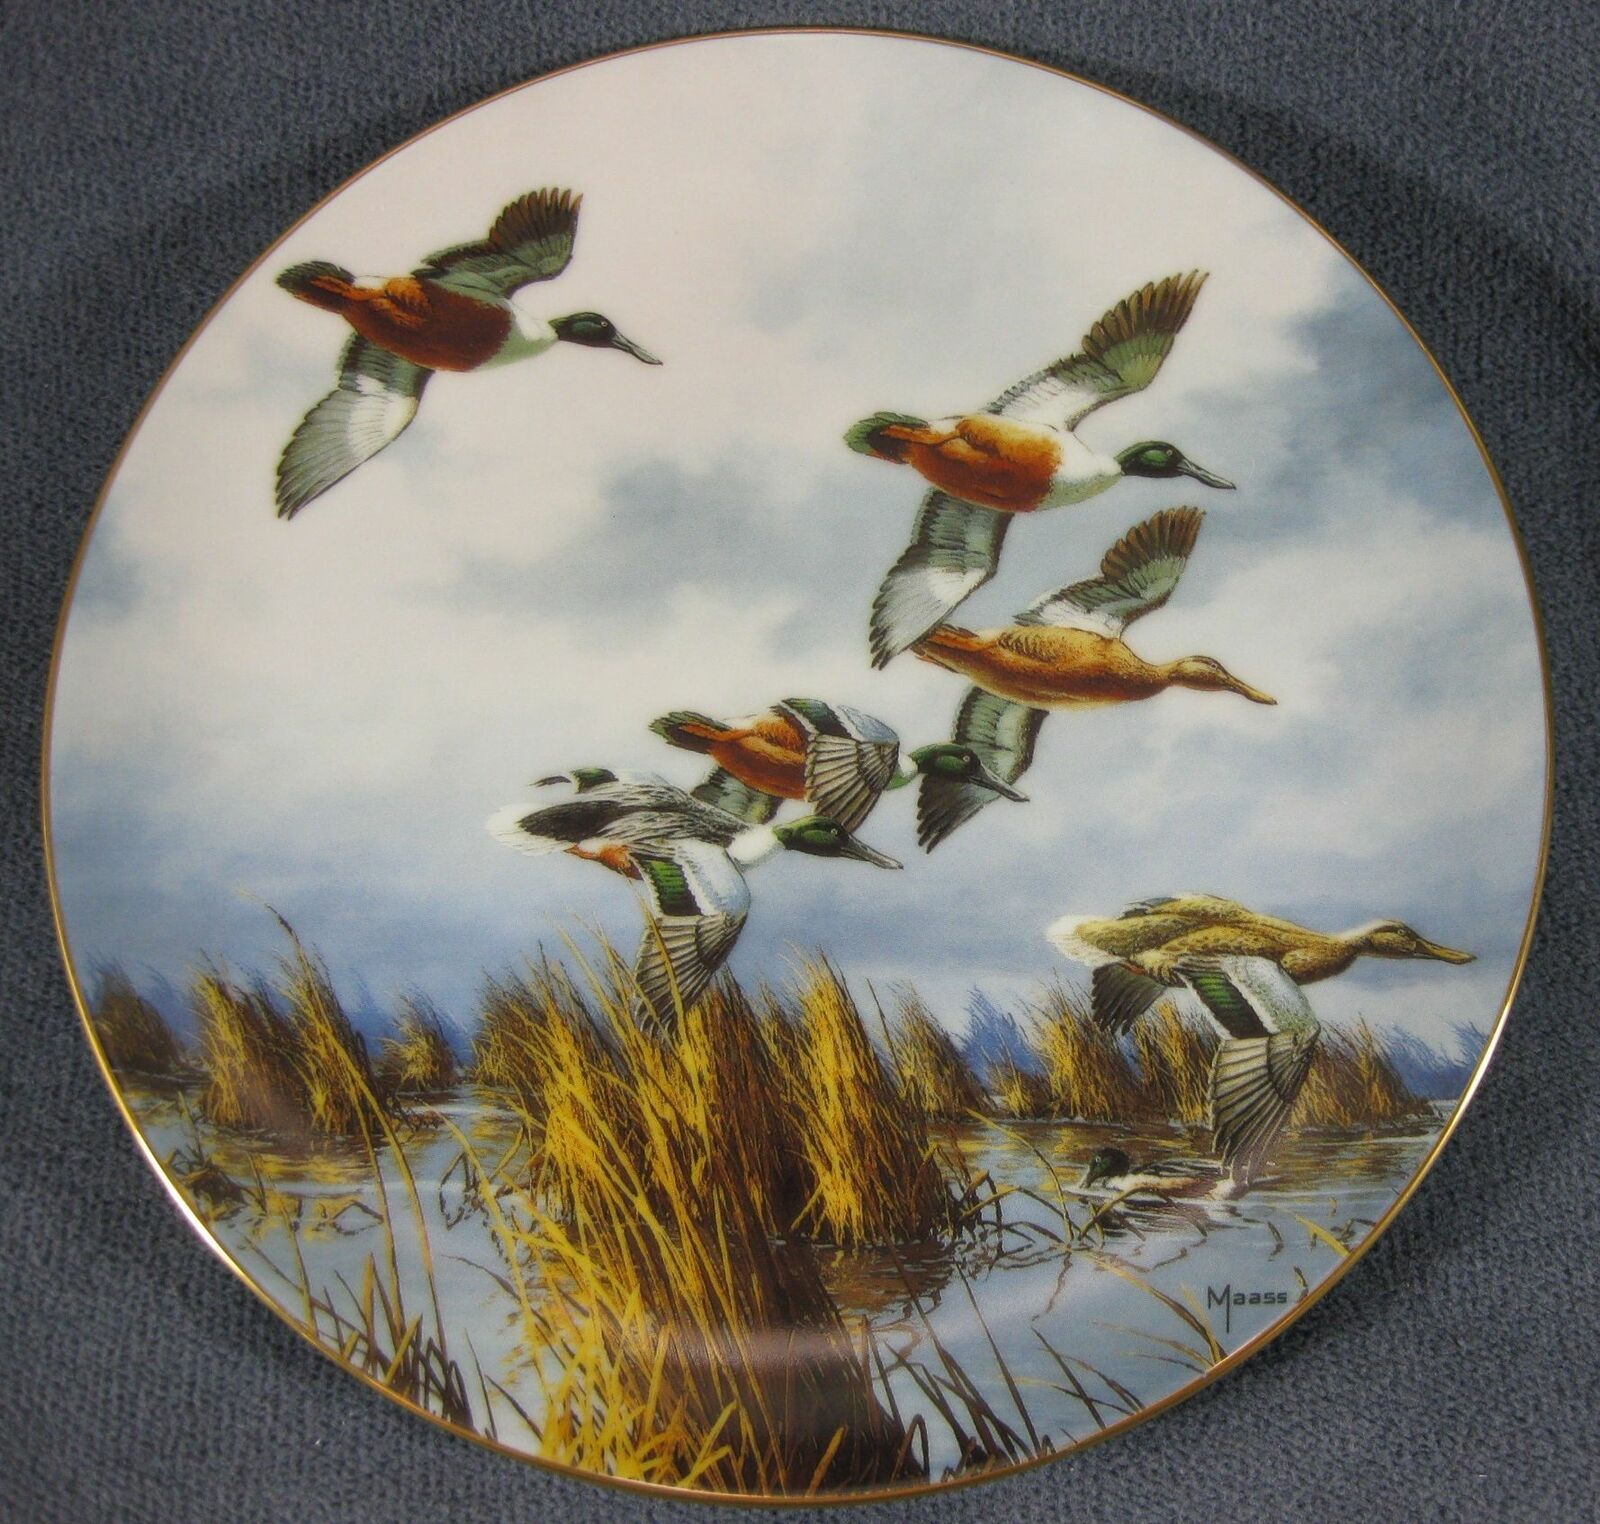 Primary image for Late Comers Collector Plate by David Maass On The Wing 1992 Ducks